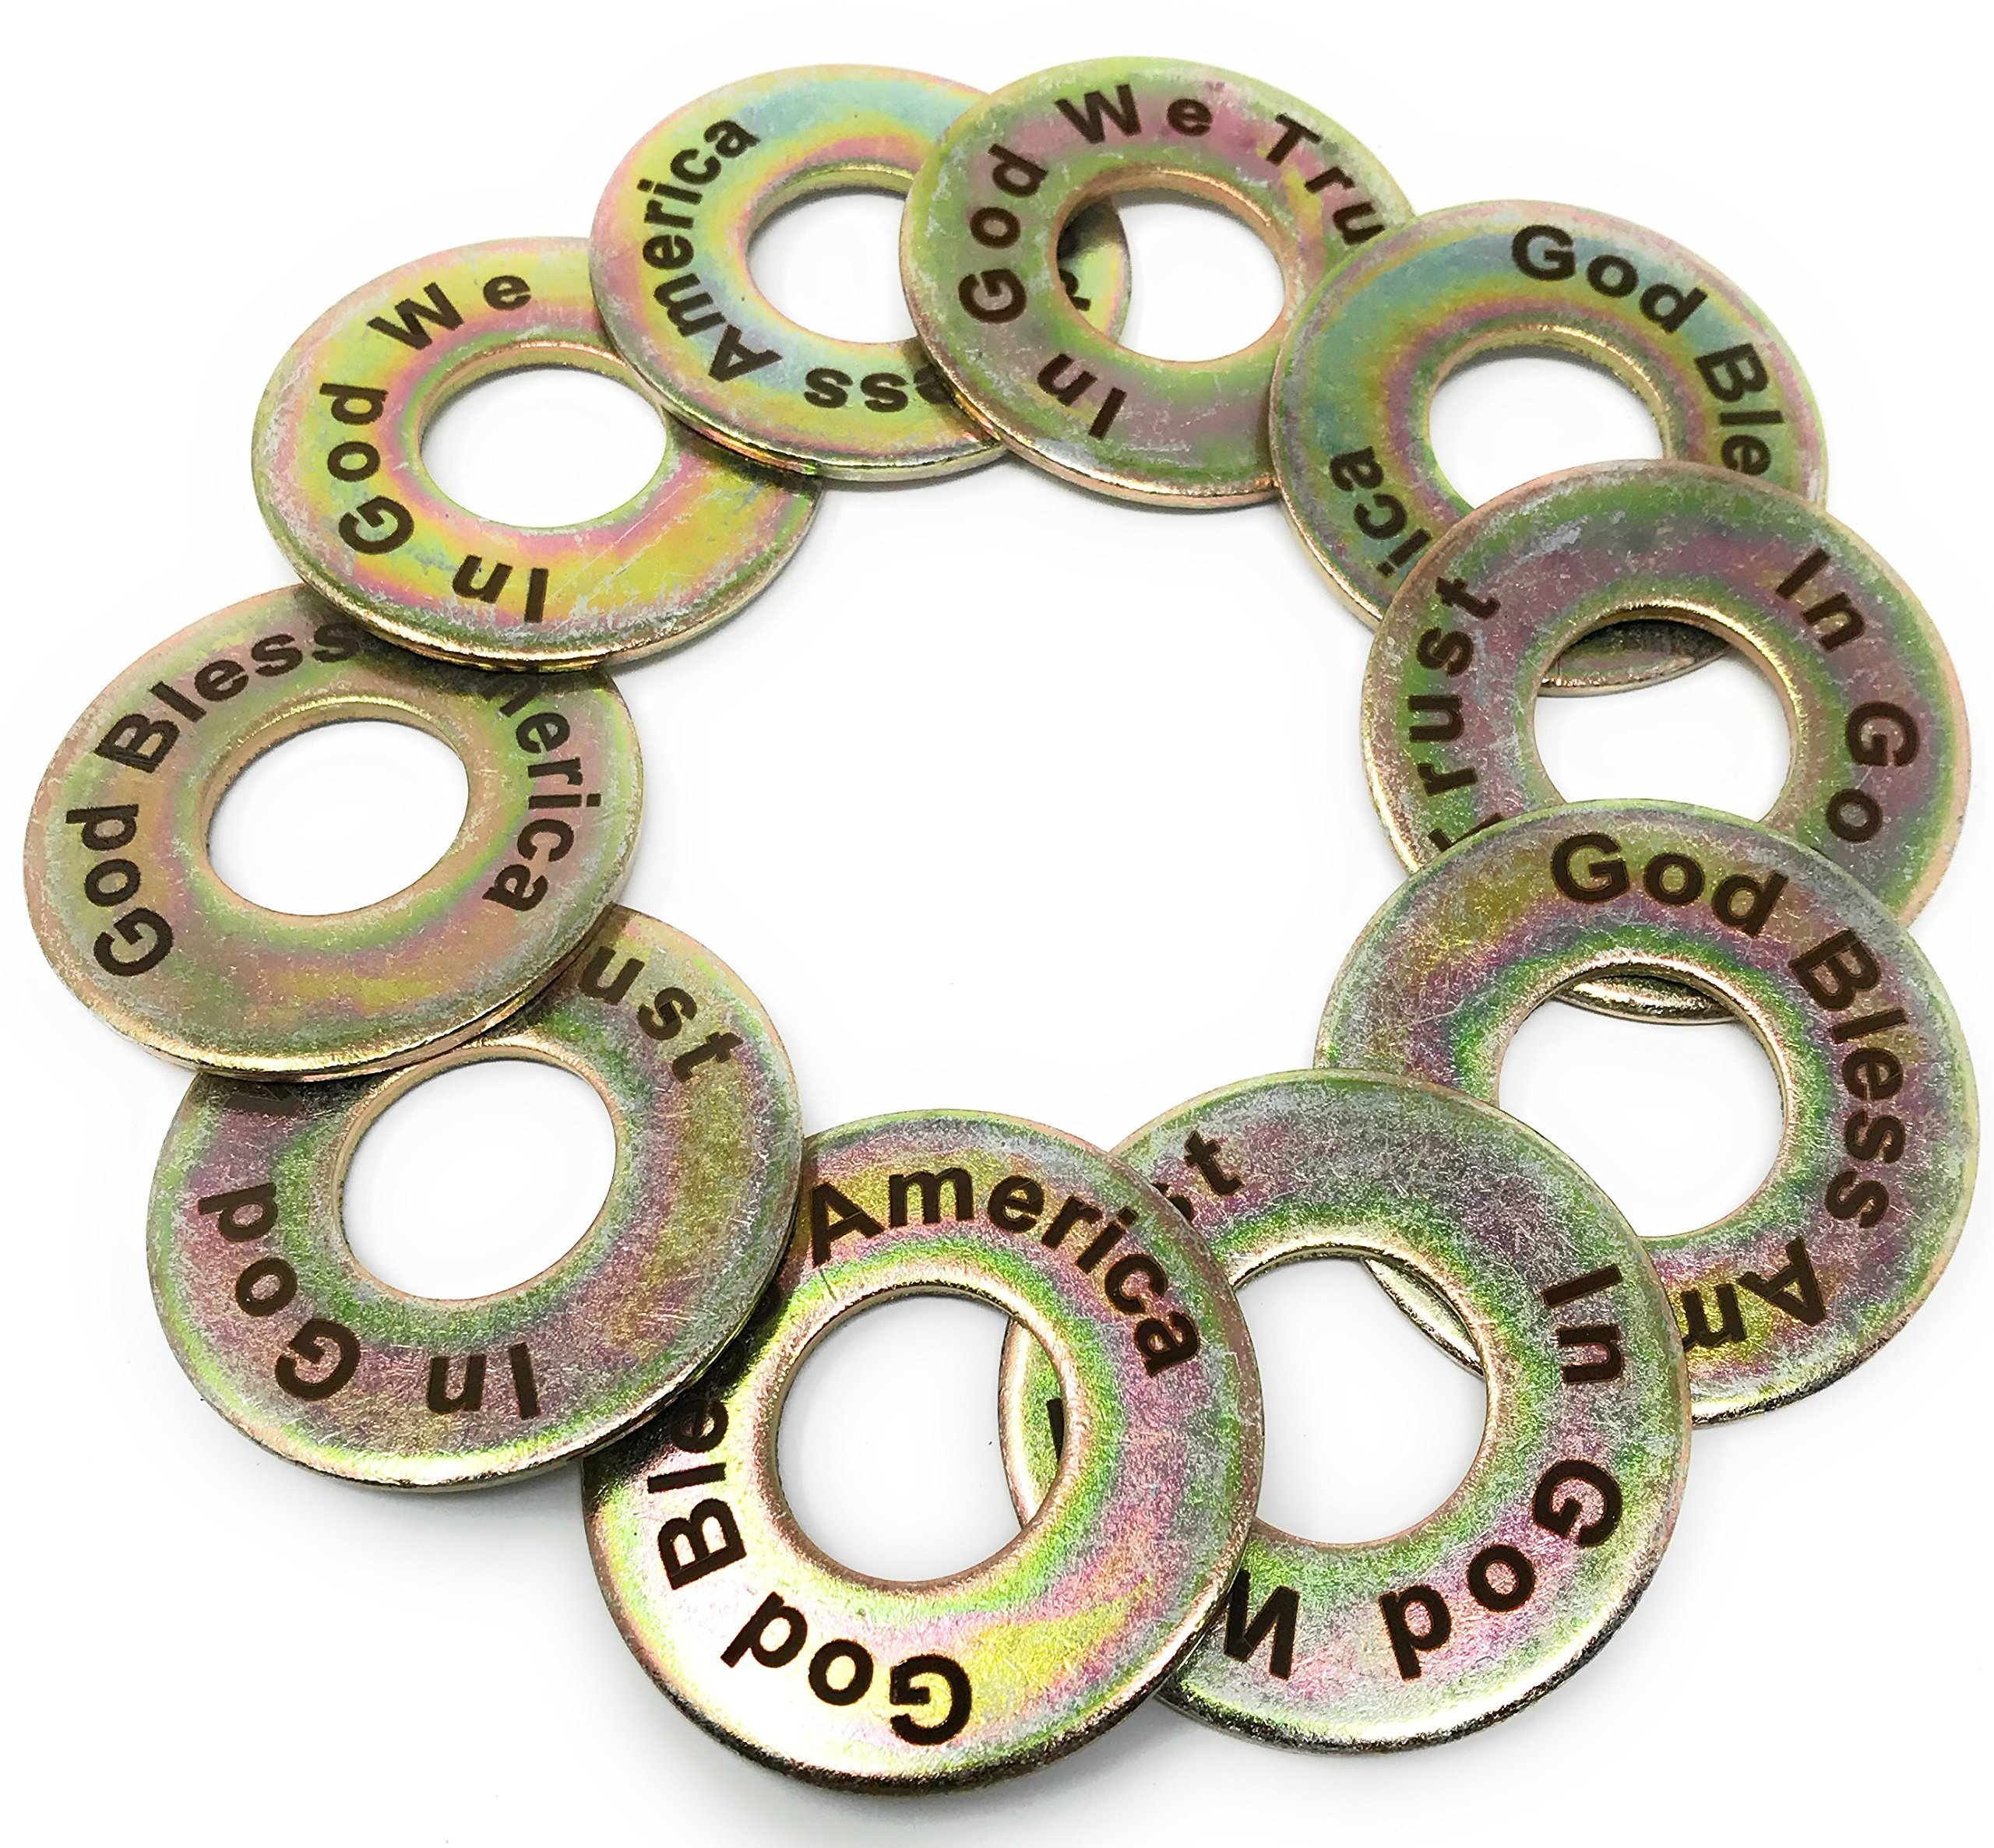 Laser Engraved God Bless America and In God We Trust Yellow Zinc Coated Steel Replacement 2-1/2'' Washer Toss Pitching Game Washers (Set of 10)